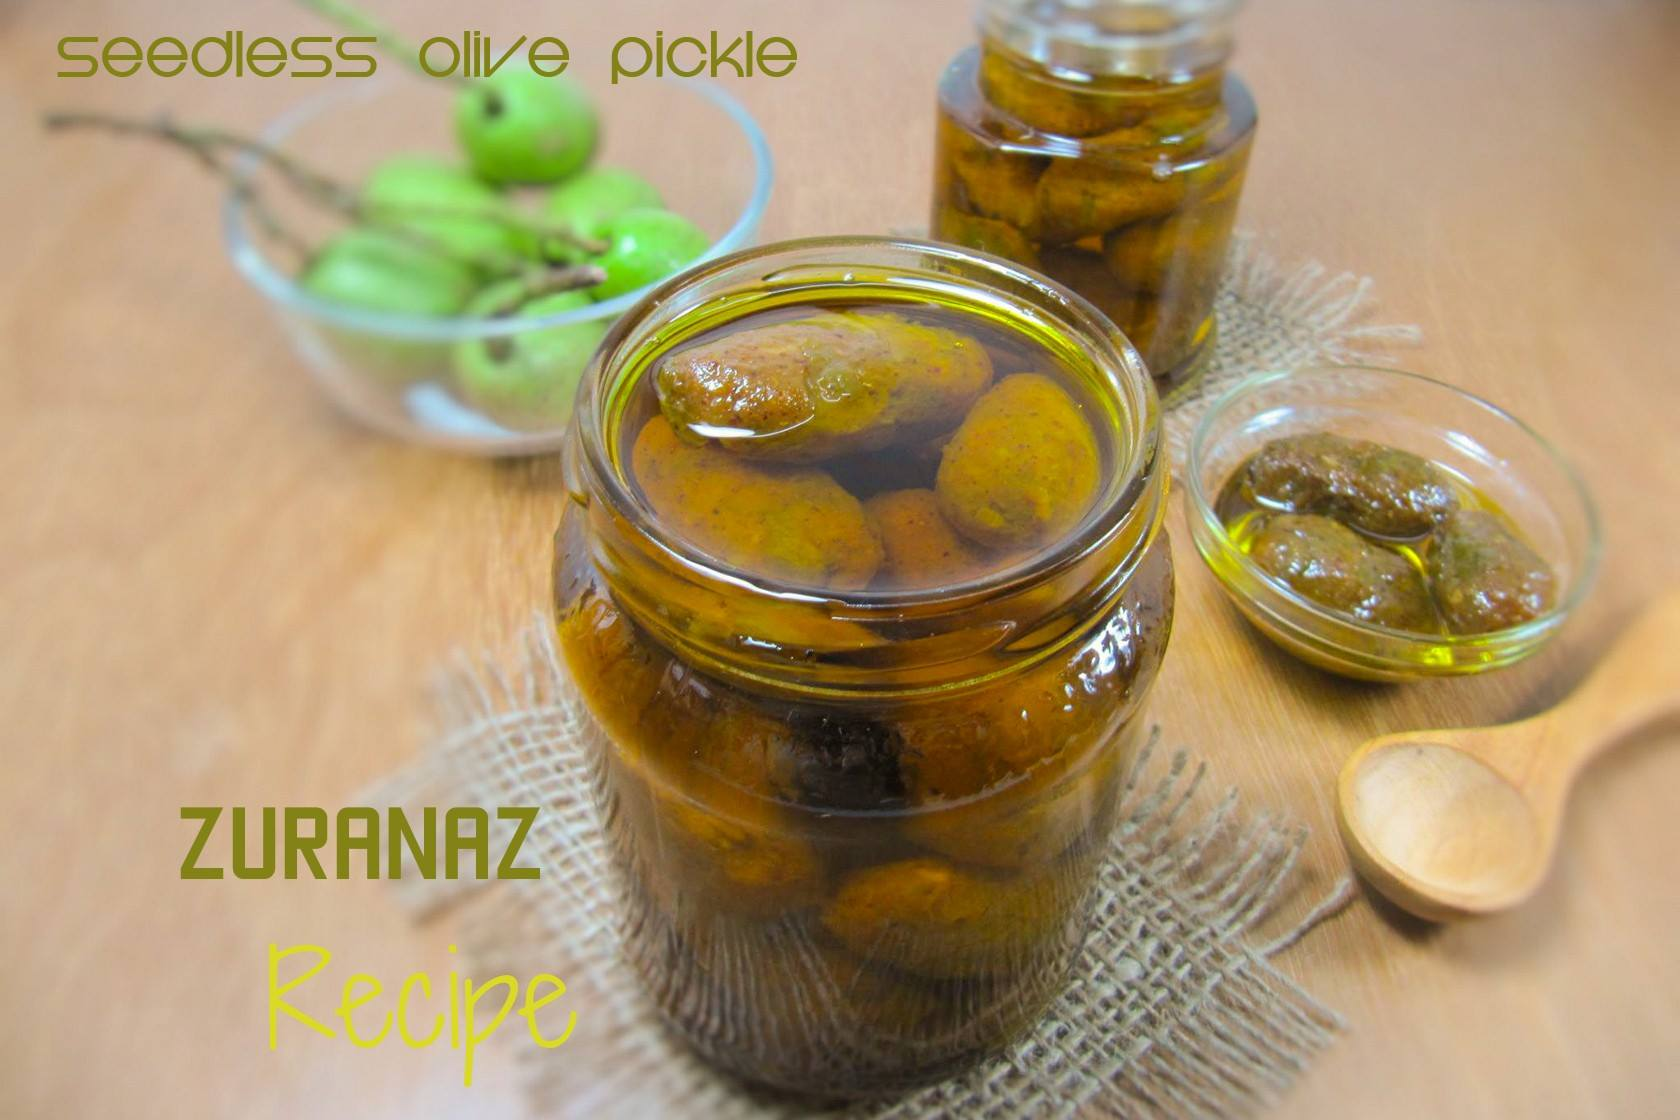 Seedless Green Olive Pickle/Seedless Jolpai Achar